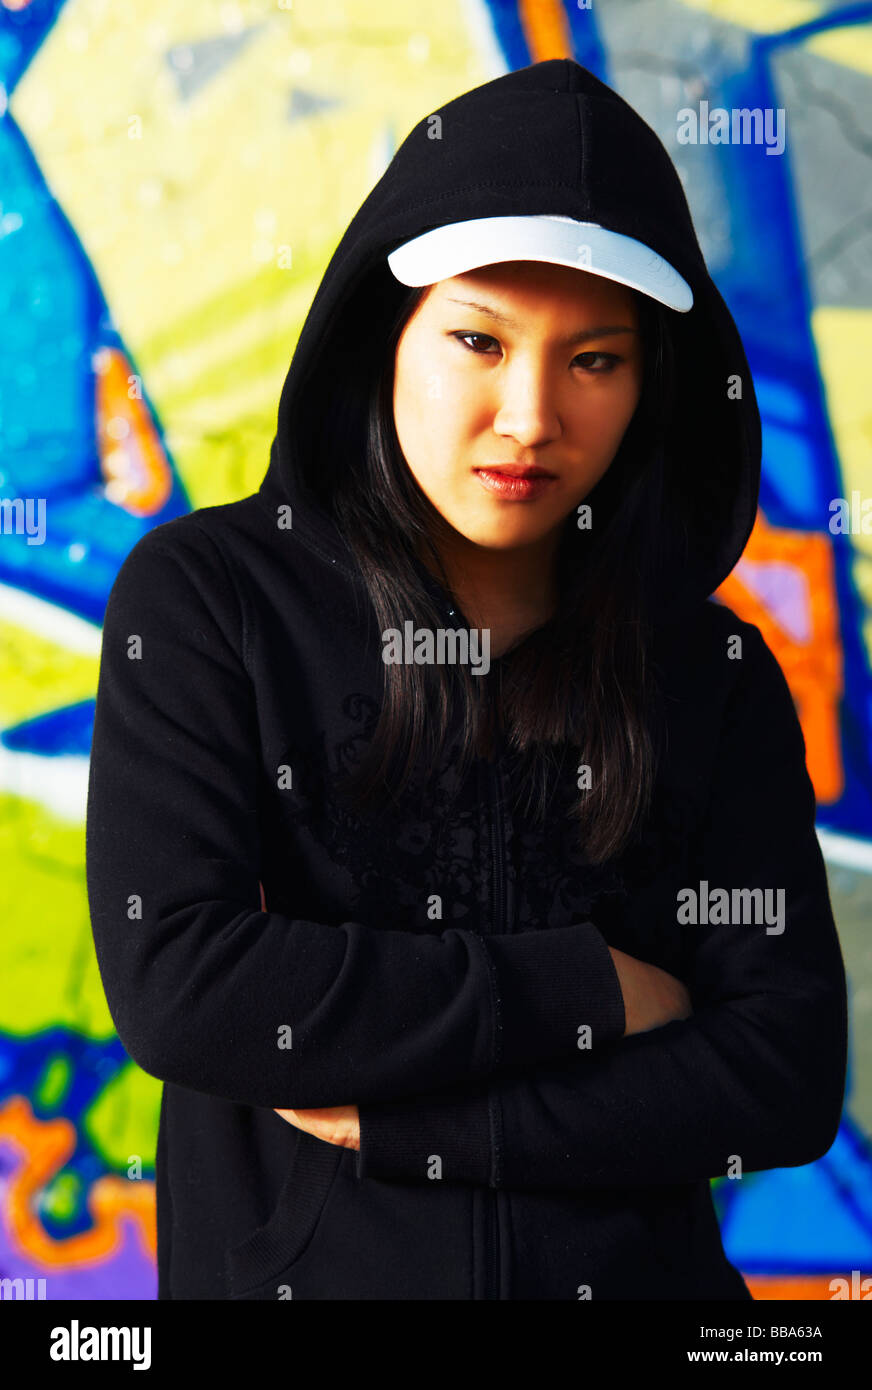 Young Asian girl in rapper pose in front of a graffiti wall - Stock Image